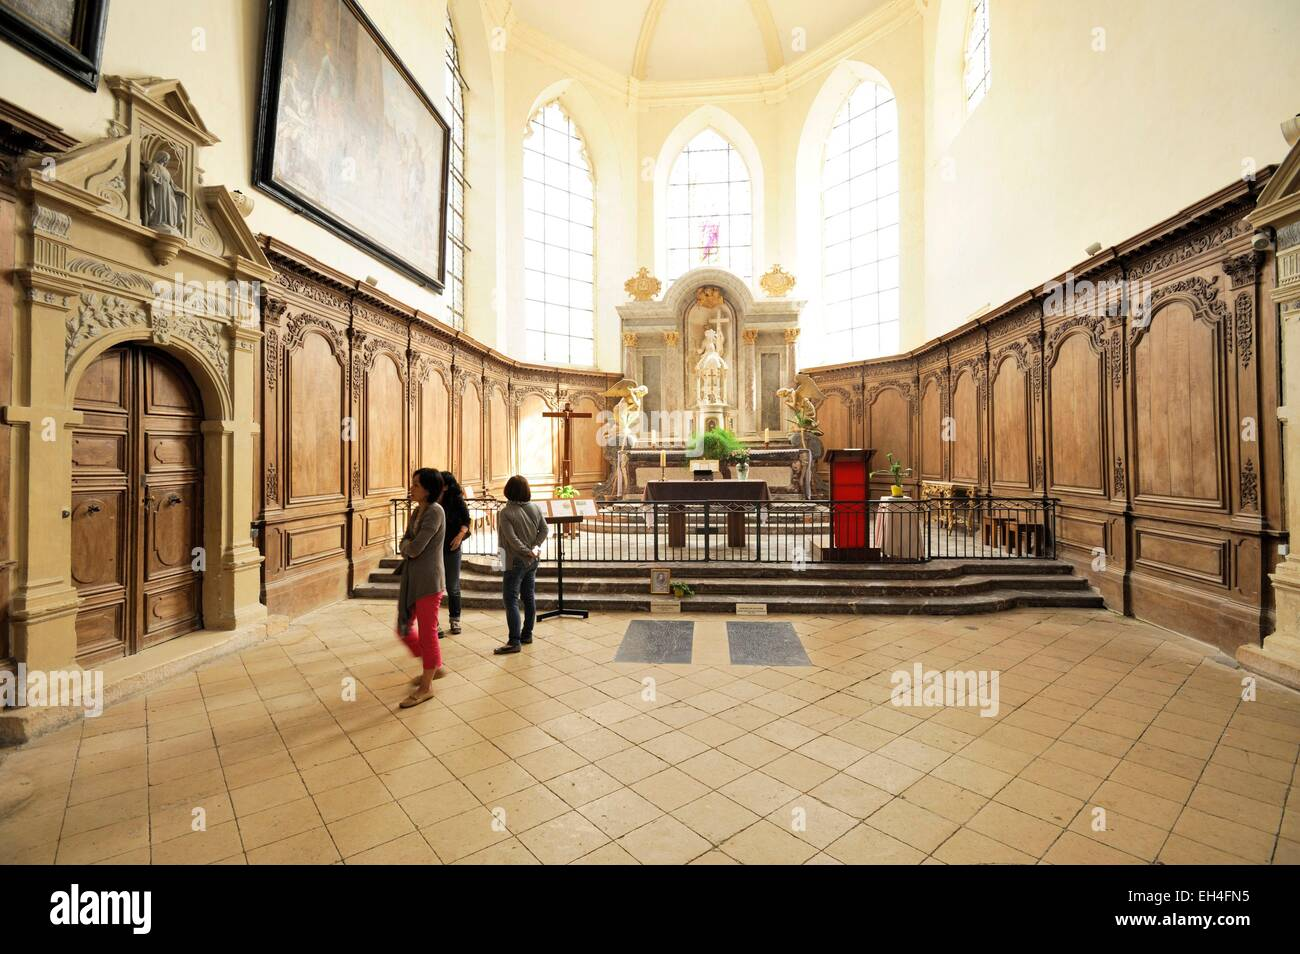 France, Marne, Hautvillers, Church of Saint Sindulphe, choir with the tombs of Dom Perignon and Dom Royer - Stock Image